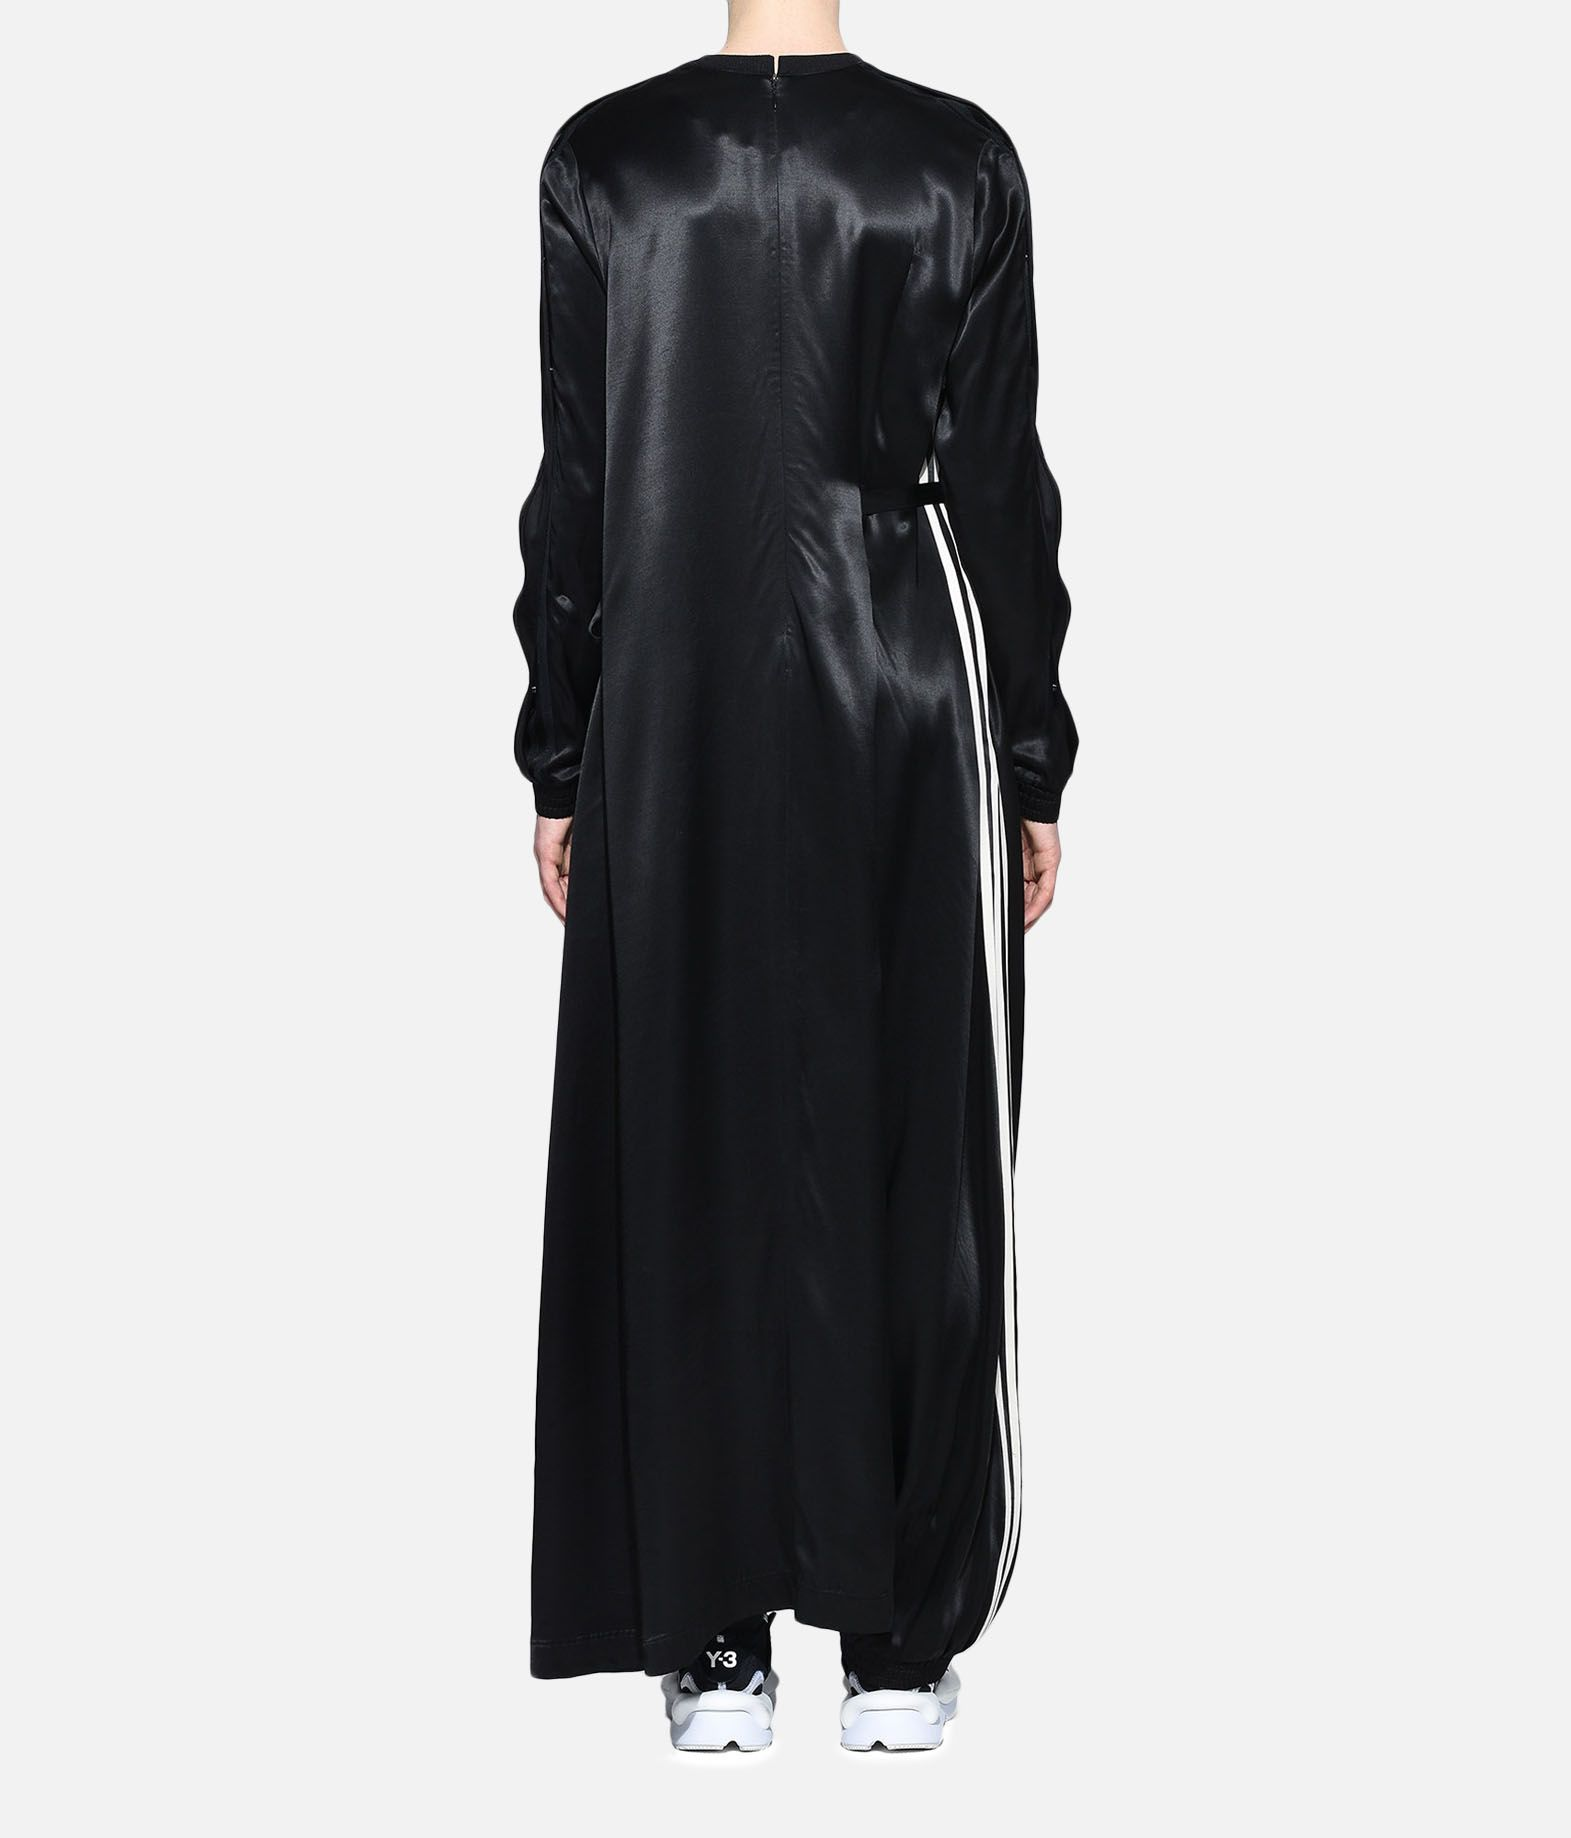 Y-3 Y-3 3-Stripes Lux Track Dress Robe longue Femme d